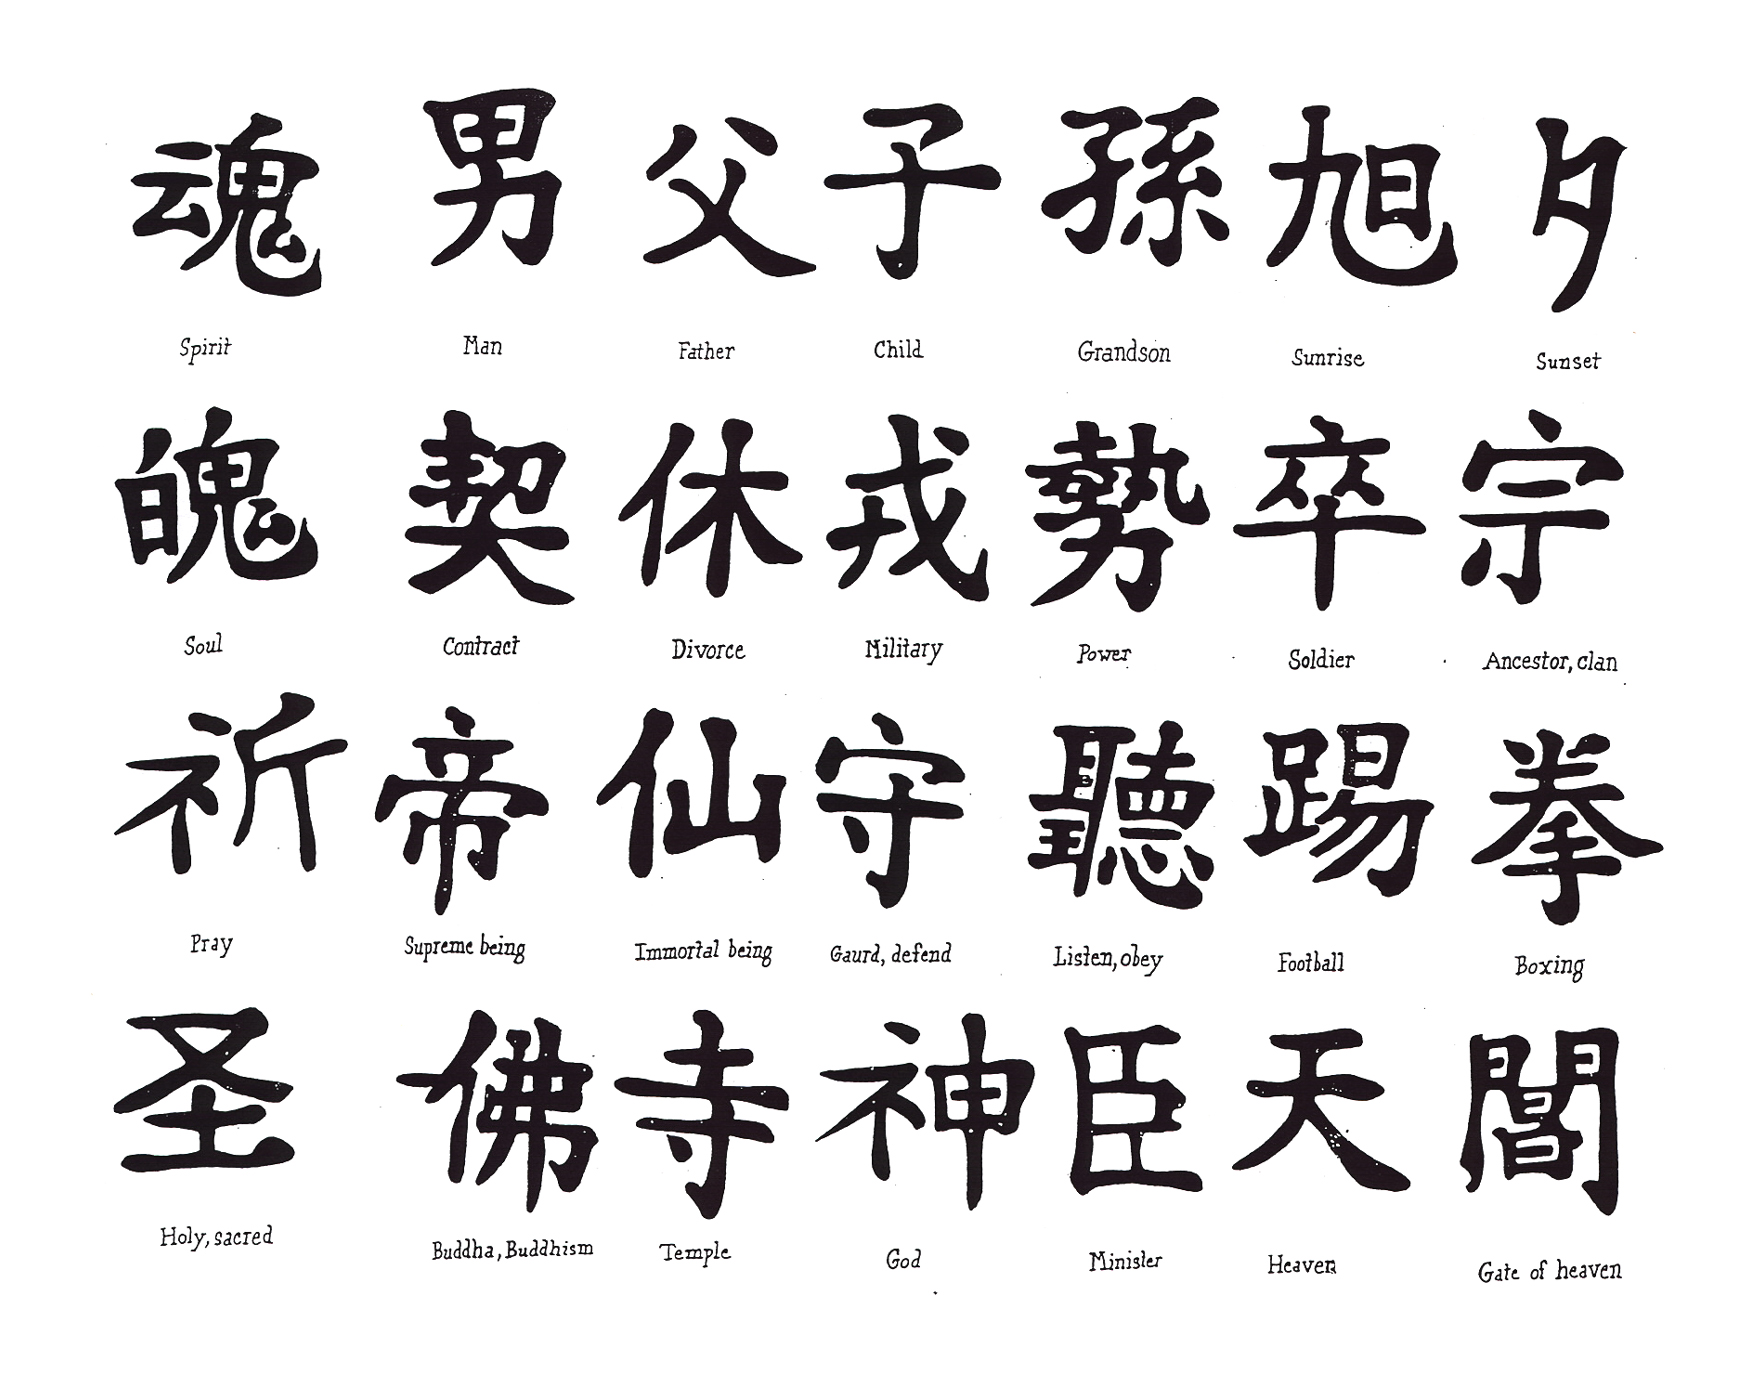 http://www.xnvx.com/data/media/74/Chinese_Signs_0510.jpg